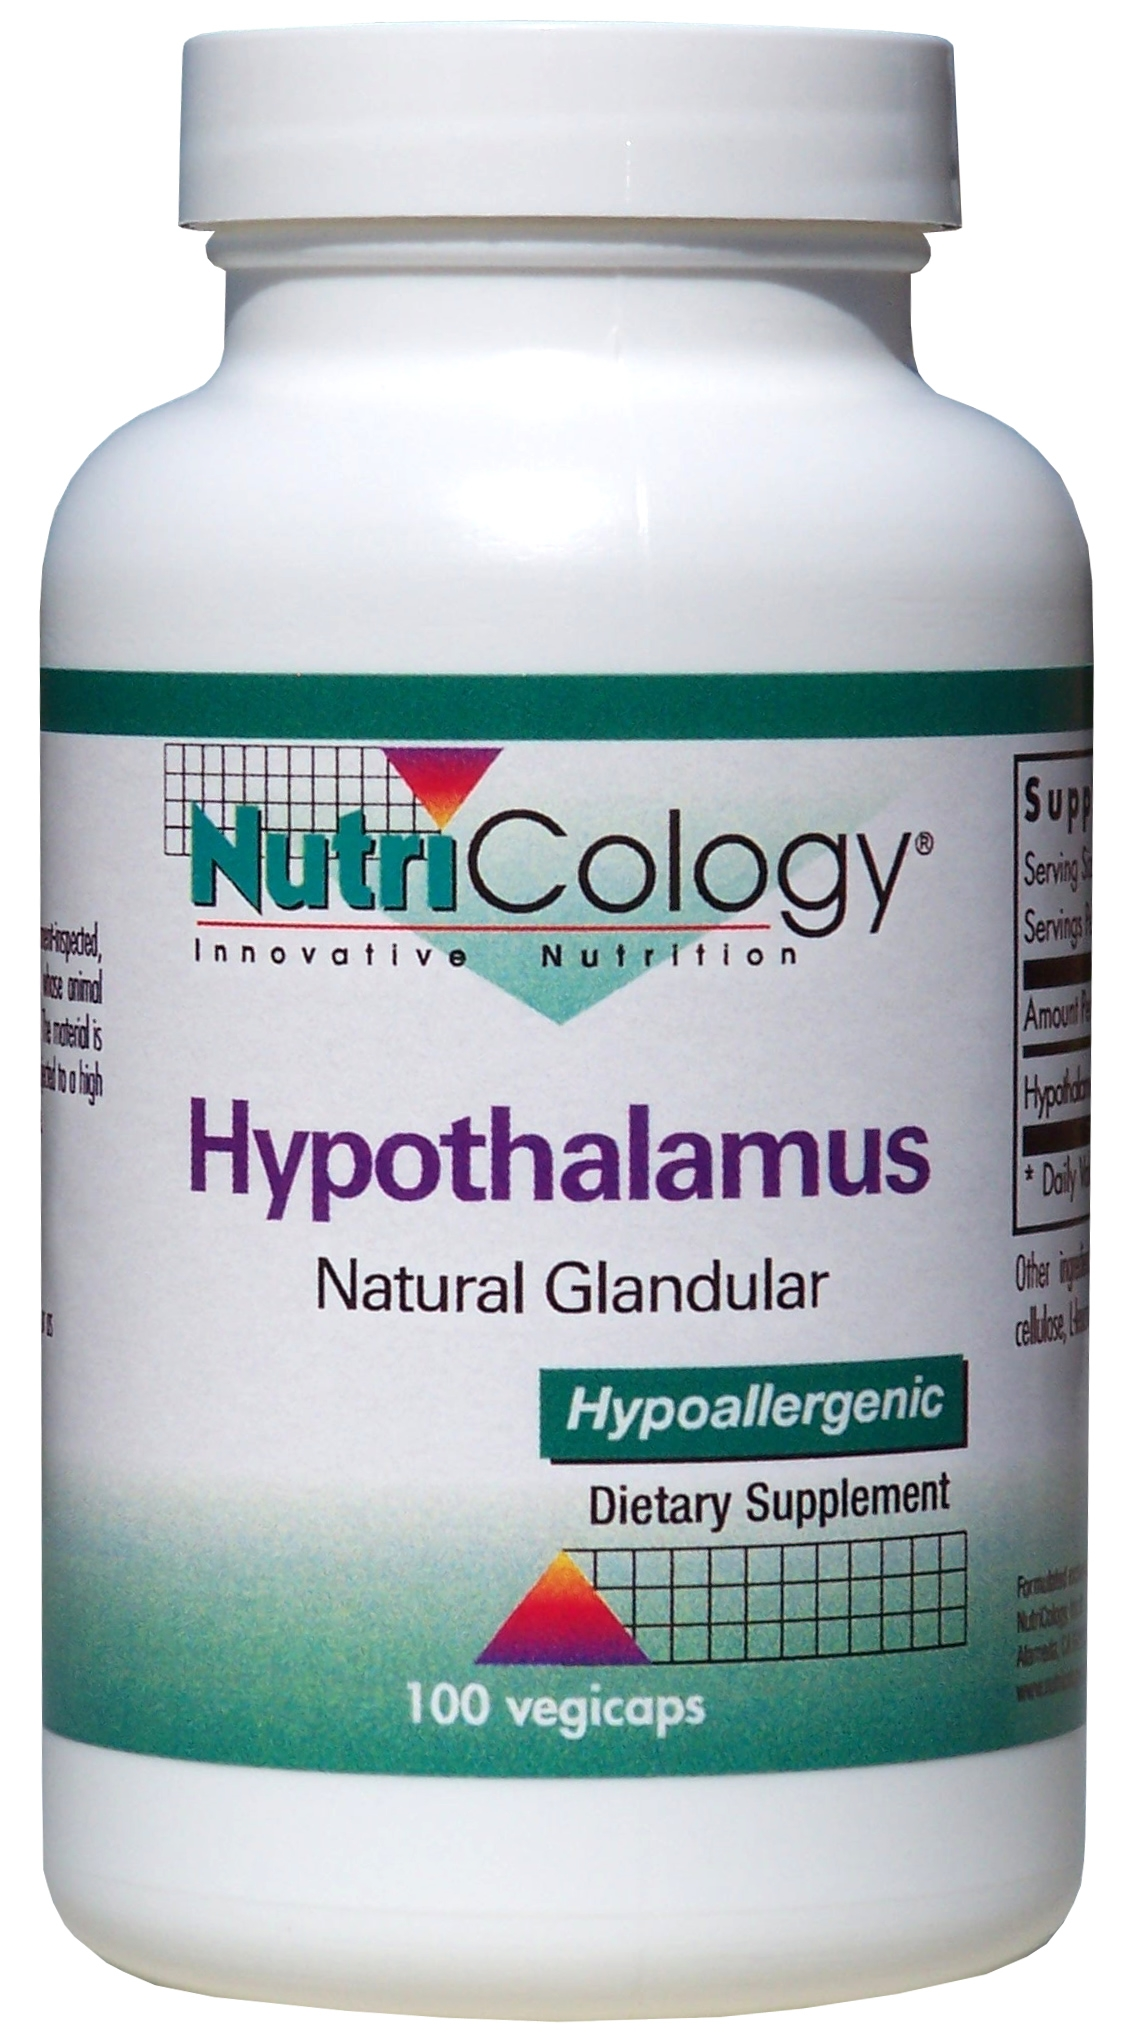 Hypothalamus Natural Glandular 100 Vegicaps by Nutricology